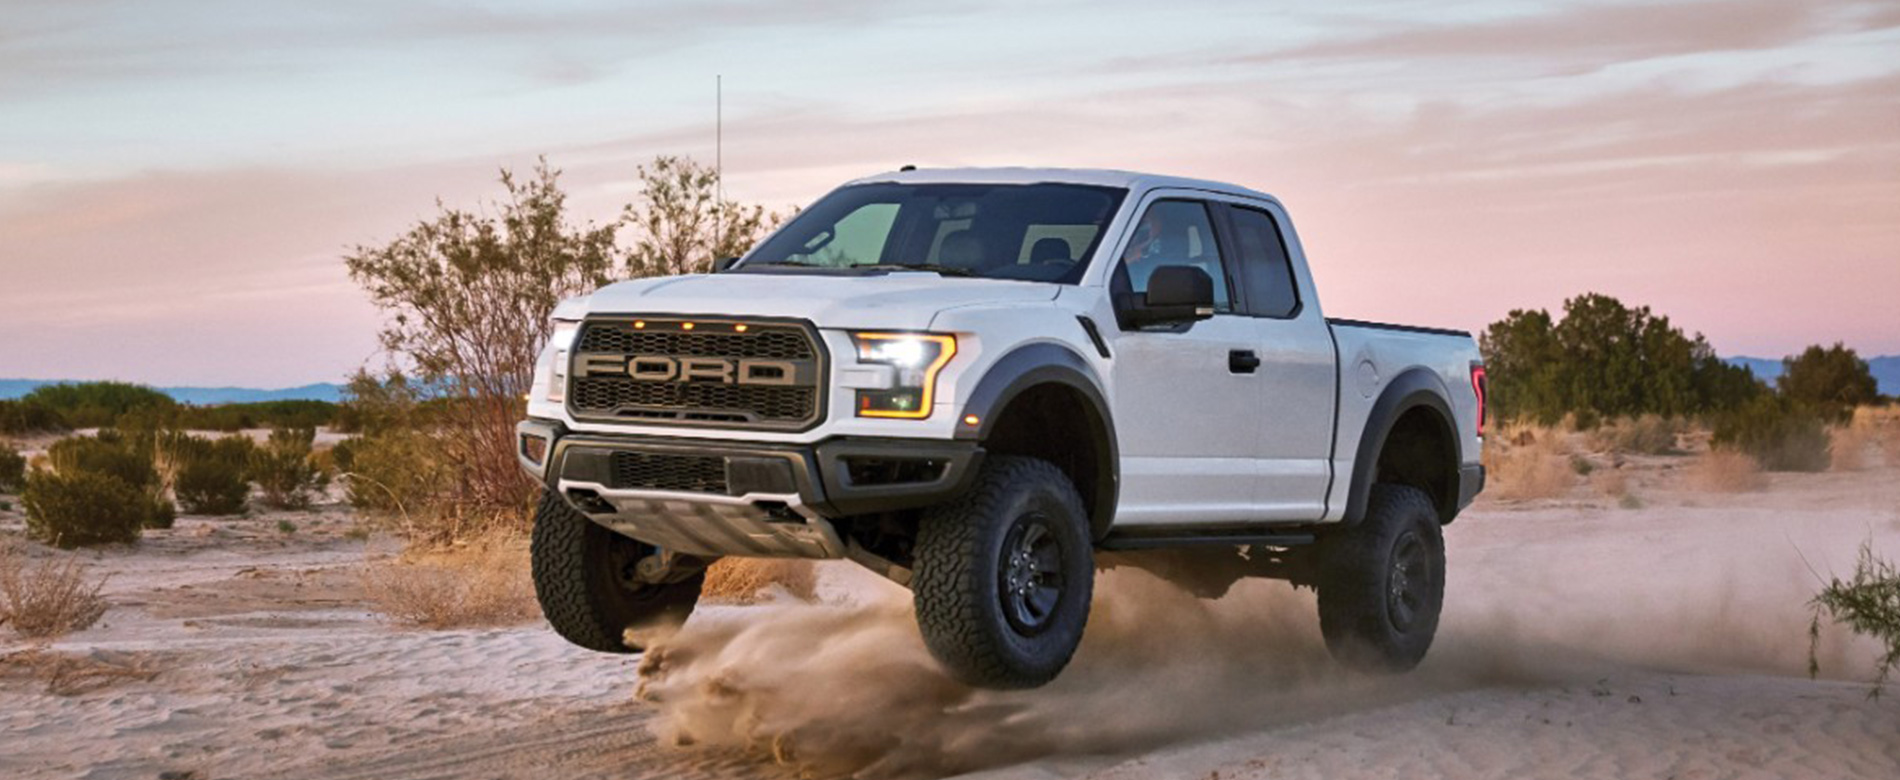 2017 ford raptor f 150 off road machine video socal prerunner socal prerunner. Black Bedroom Furniture Sets. Home Design Ideas